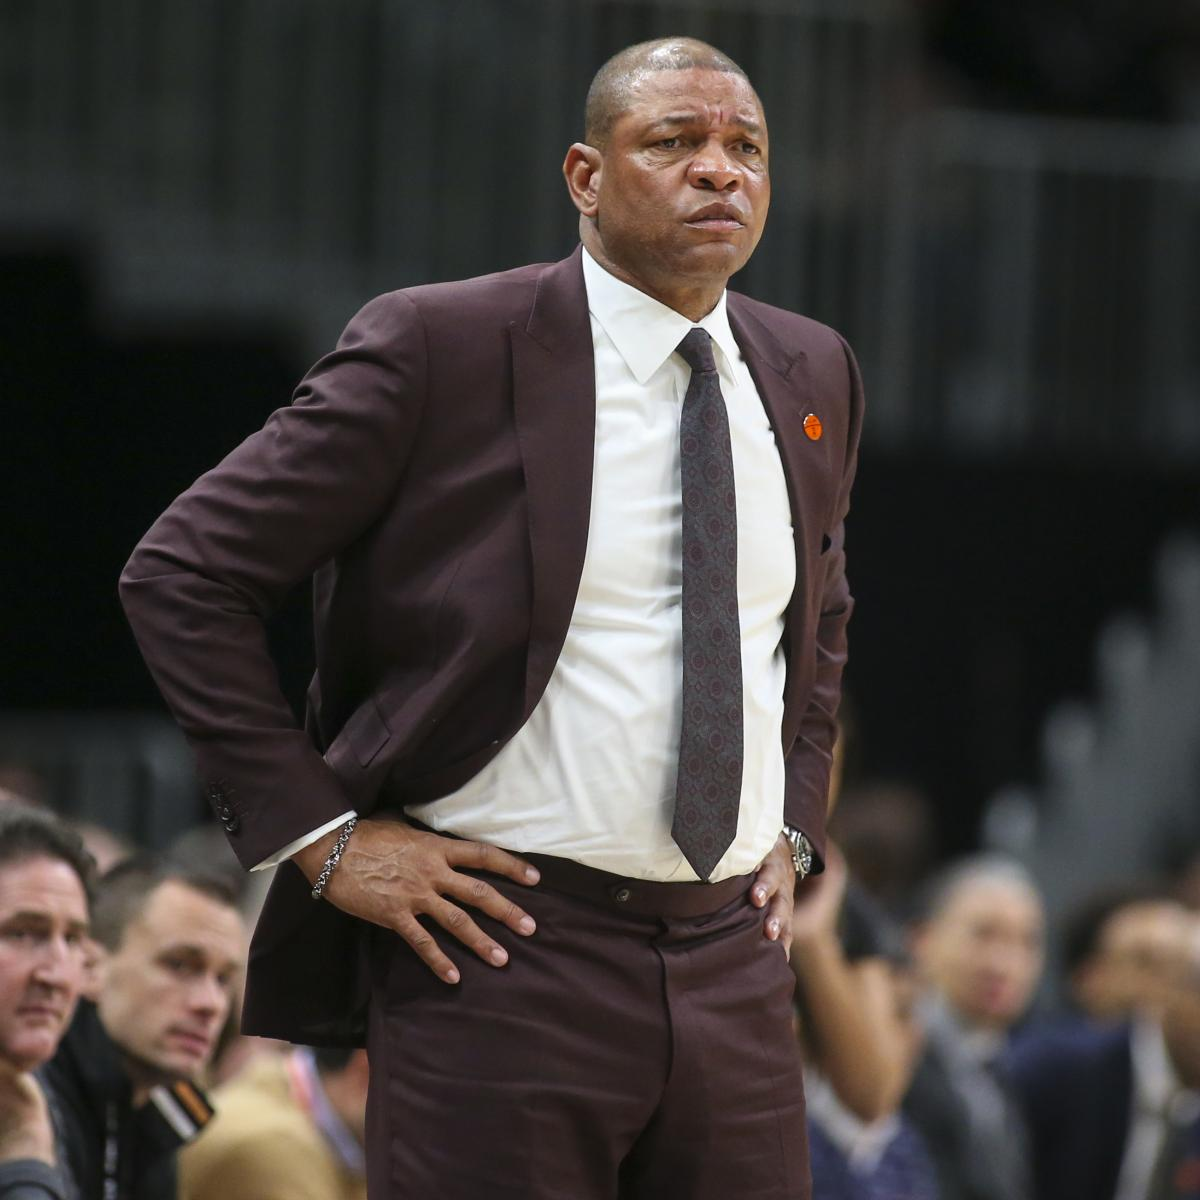 Woj: Doc Rivers 'Wants to Coach' After Clippers Exit amid 76ers, Pelicans Rumors